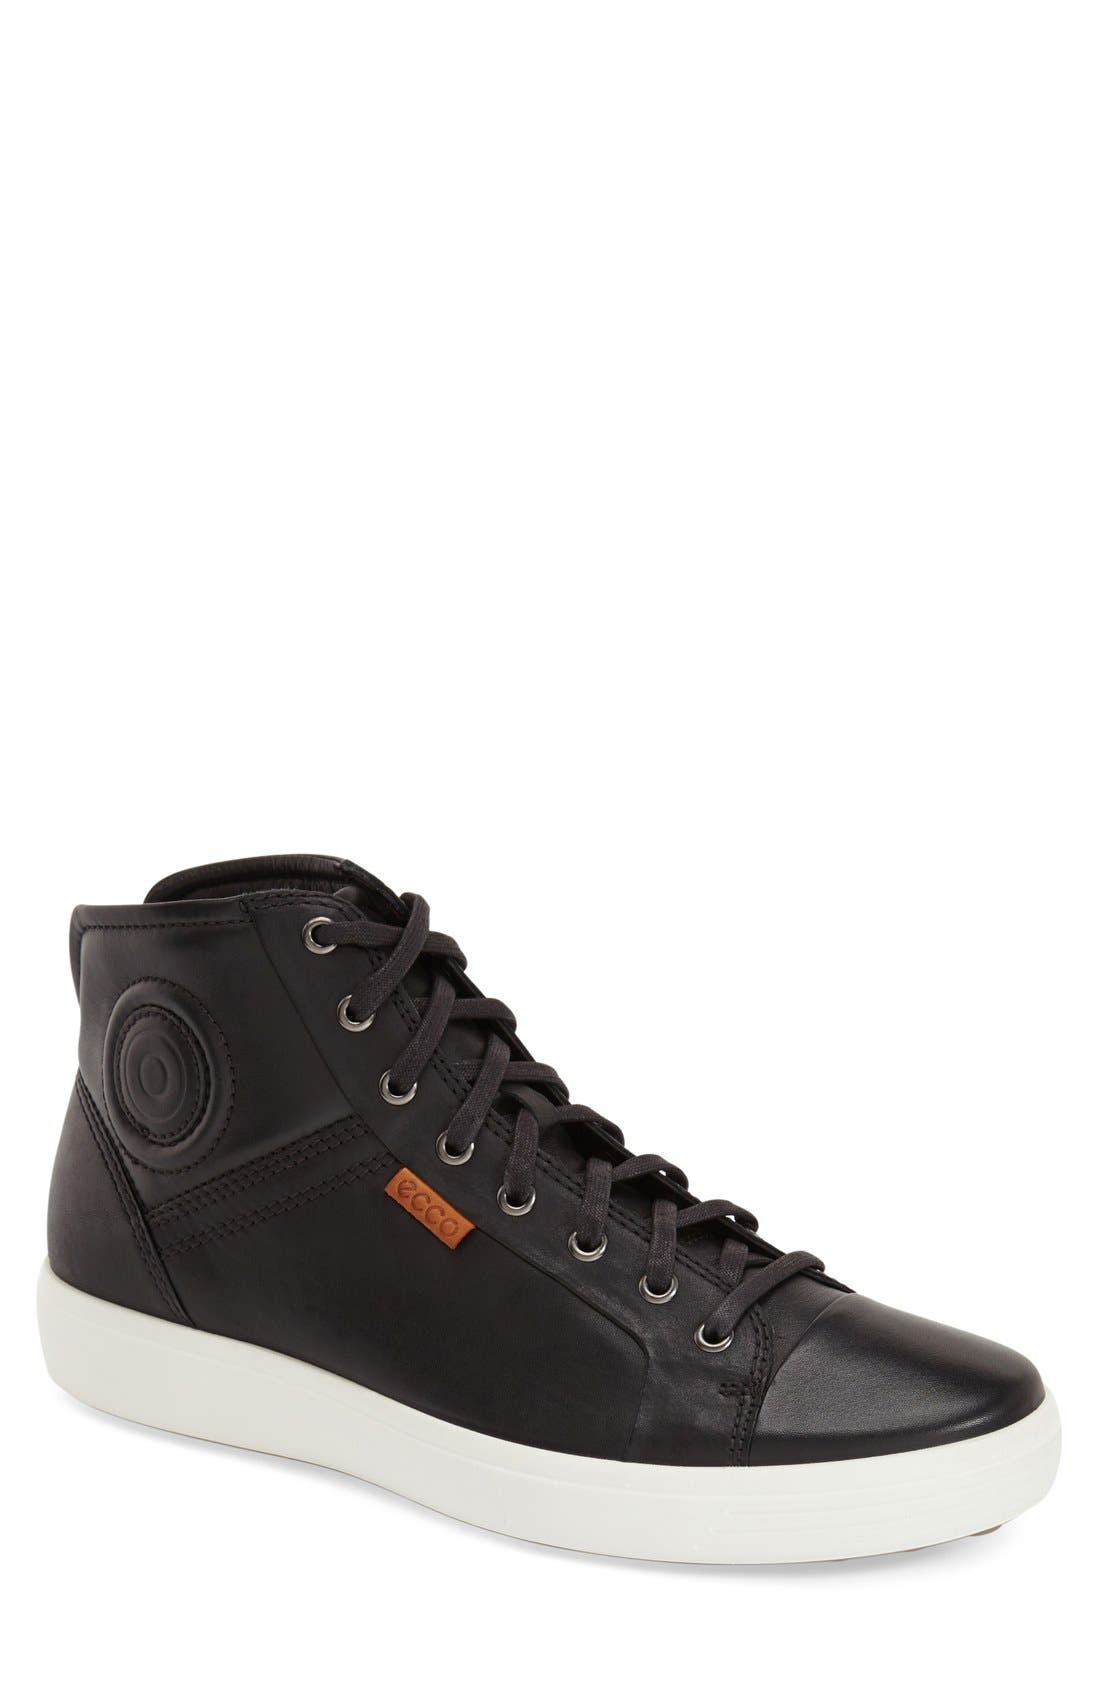 Alternate Image 1 Selected - ECCO 'Soft 7' High Top Sneaker (Men)